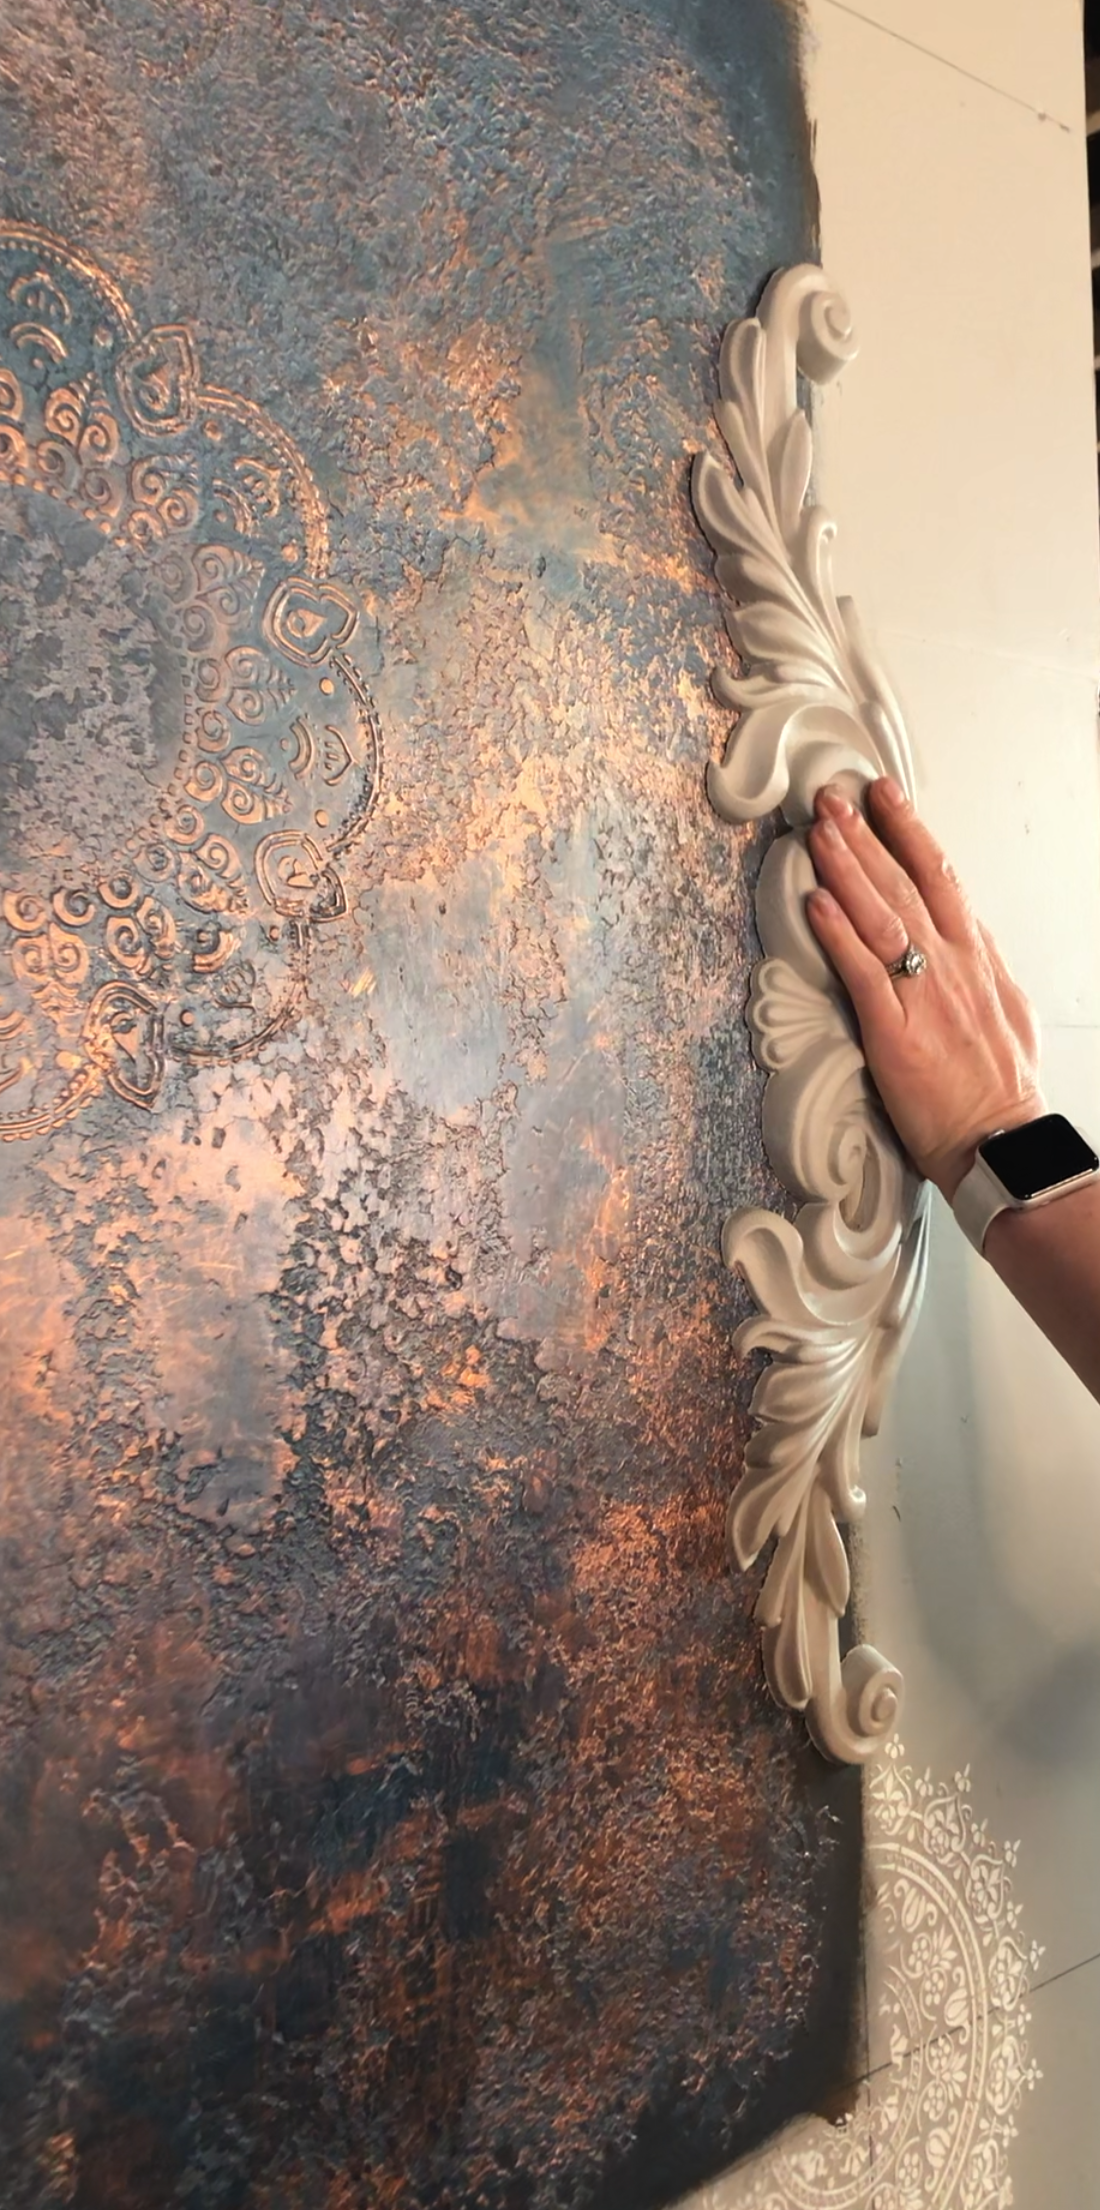 A hand pressing a pre-painted woodubend moulding onto a wall, blue and bronze texture can be seen in the foreground